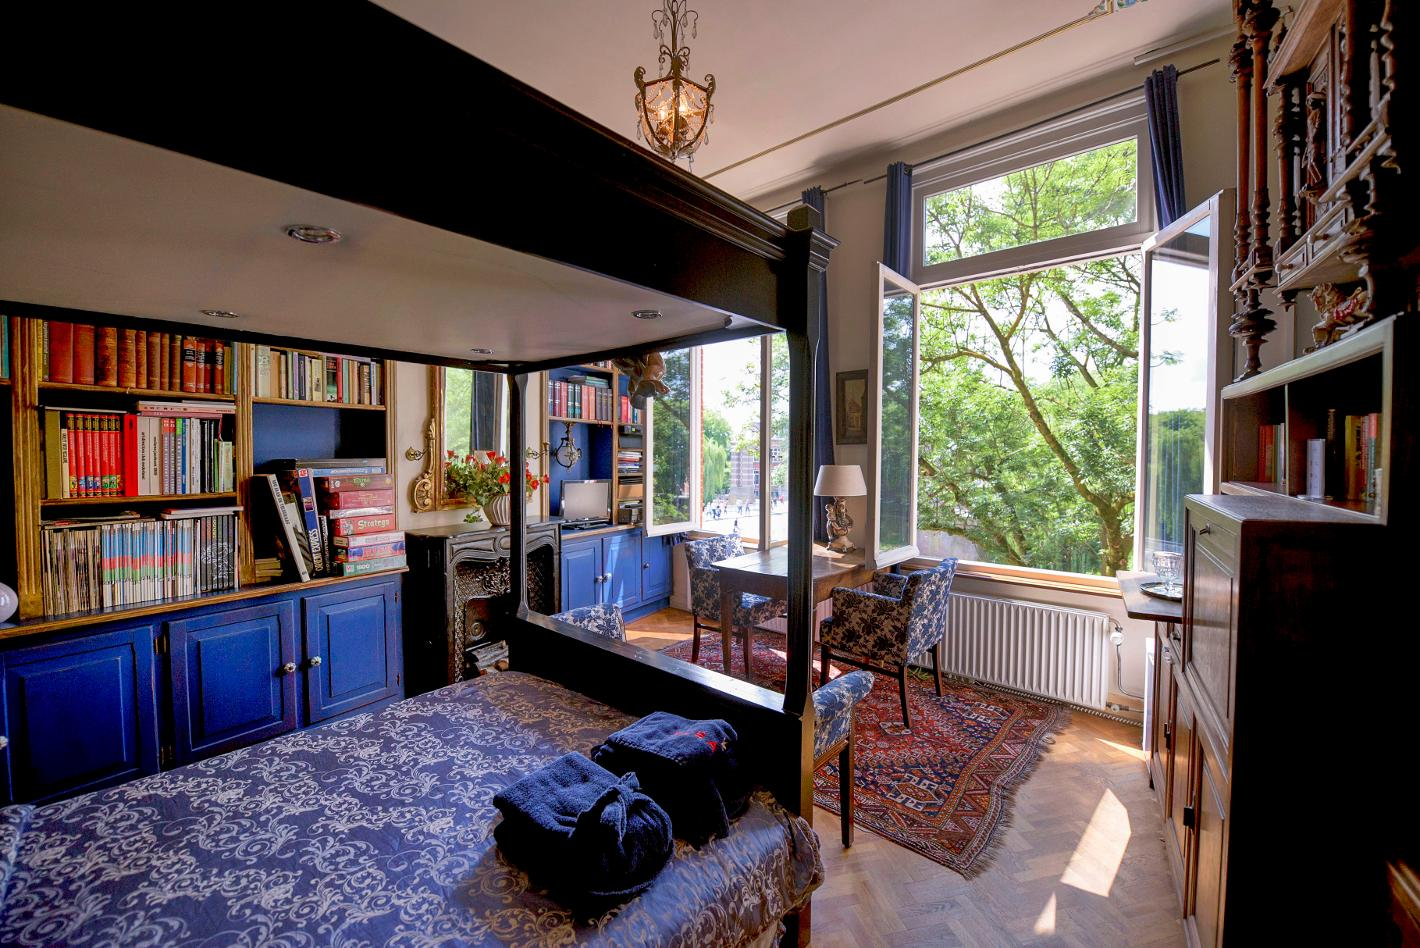 Photo B&B CubaCasa in Den Bosch, Sleep, Bed & breakfast - #5